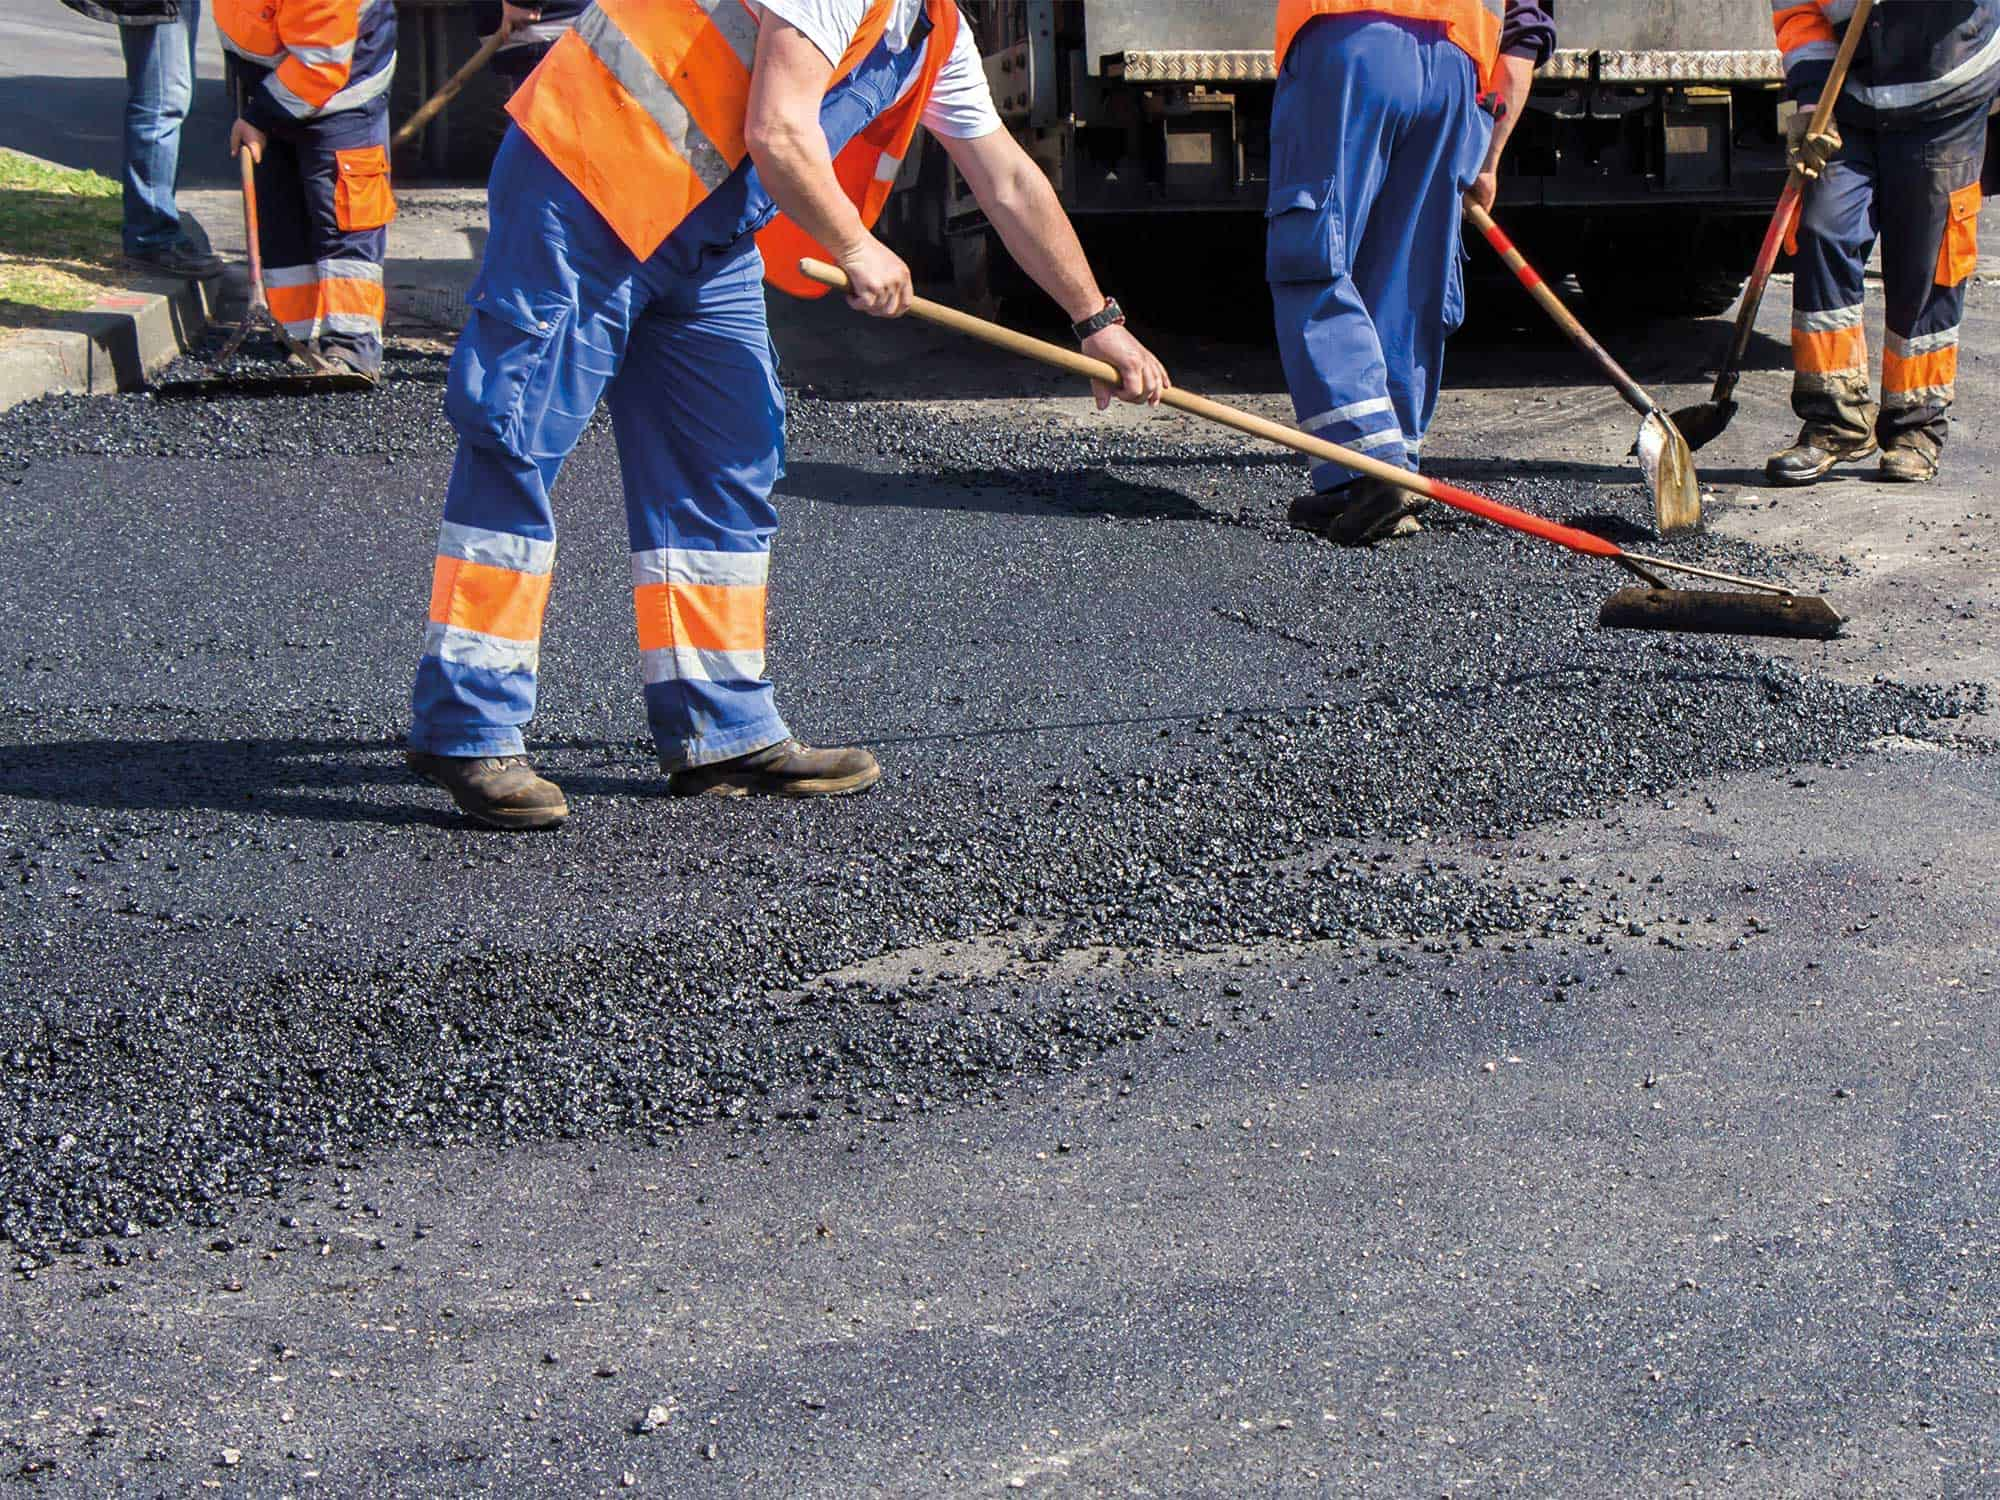 Road workers tarmacking